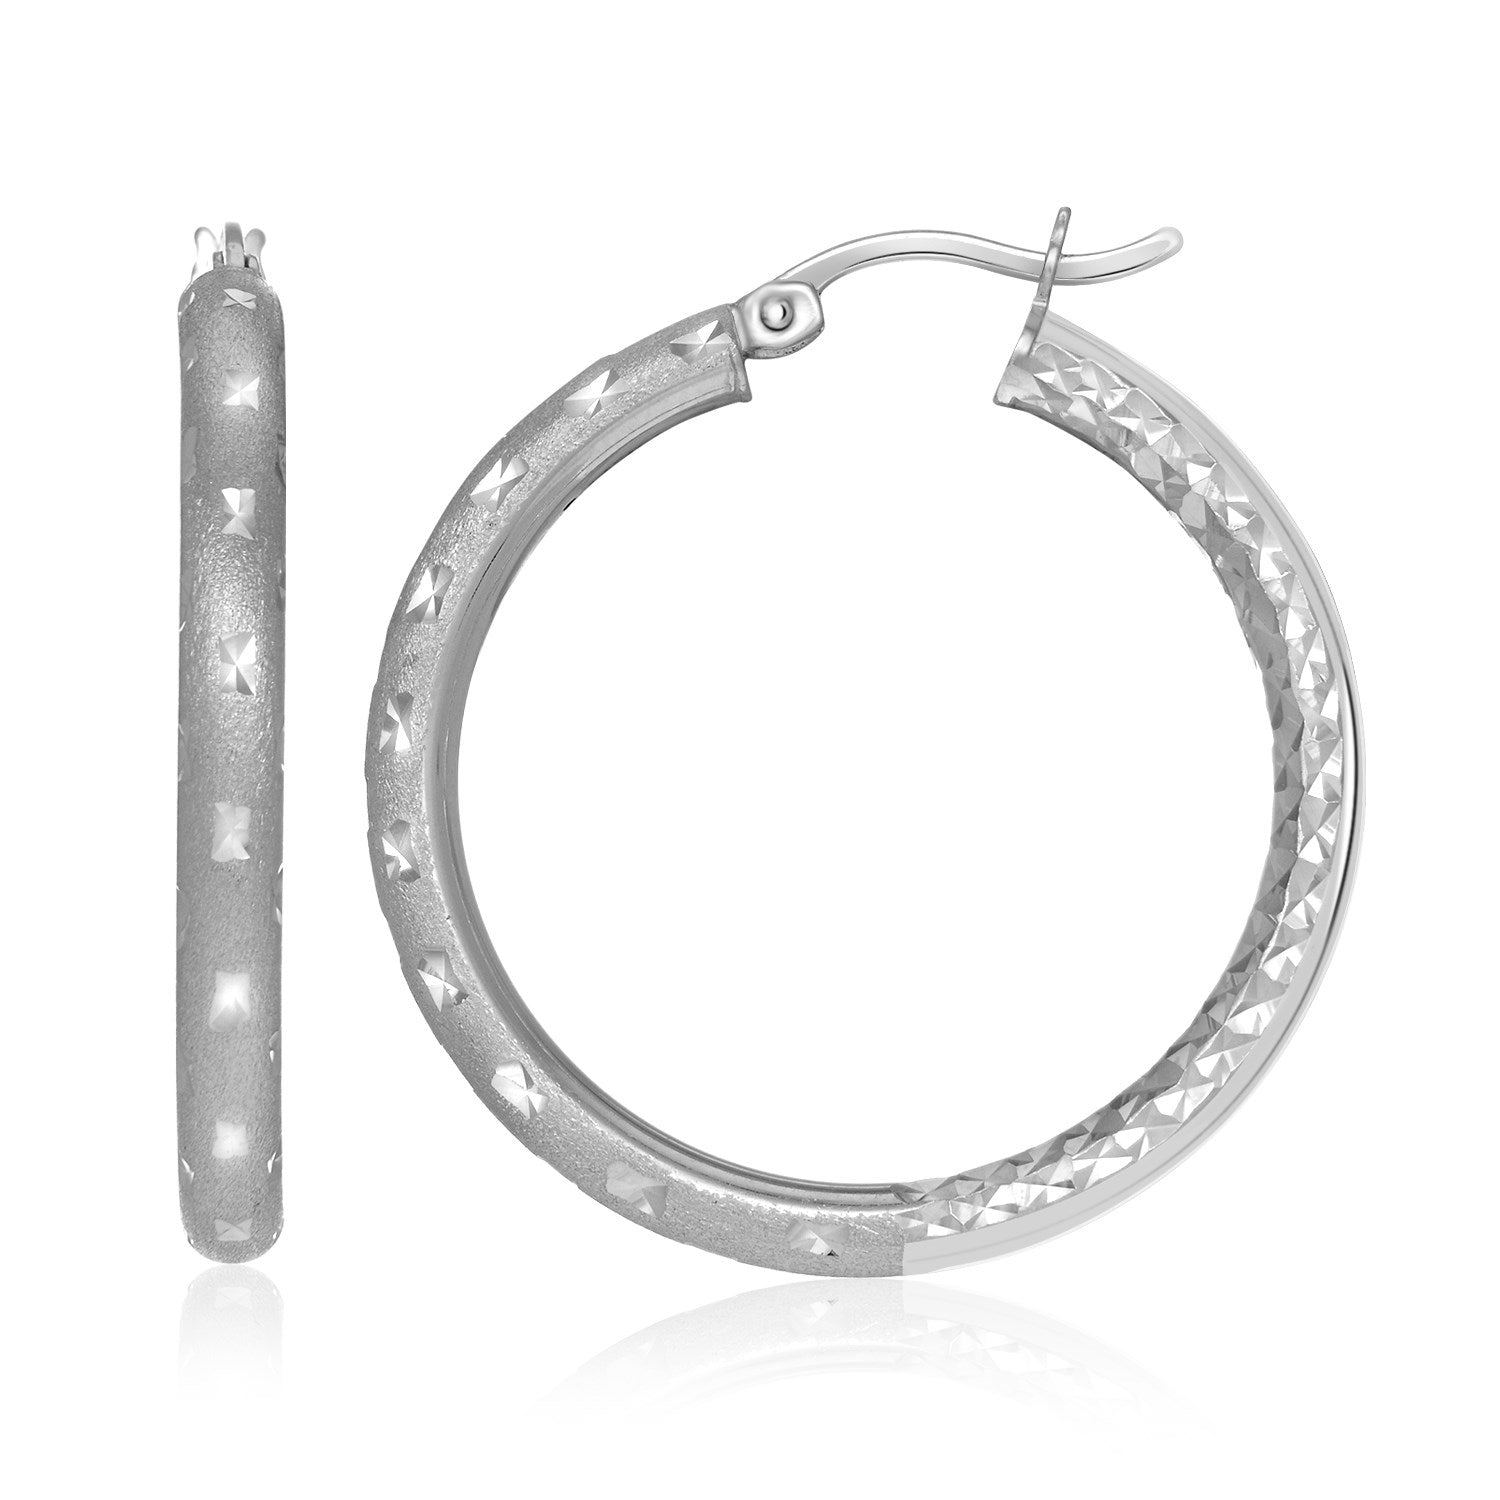 Unique Modern Paris Style Sterling Silver Star Textured Tube Style Round Hoop Earrings